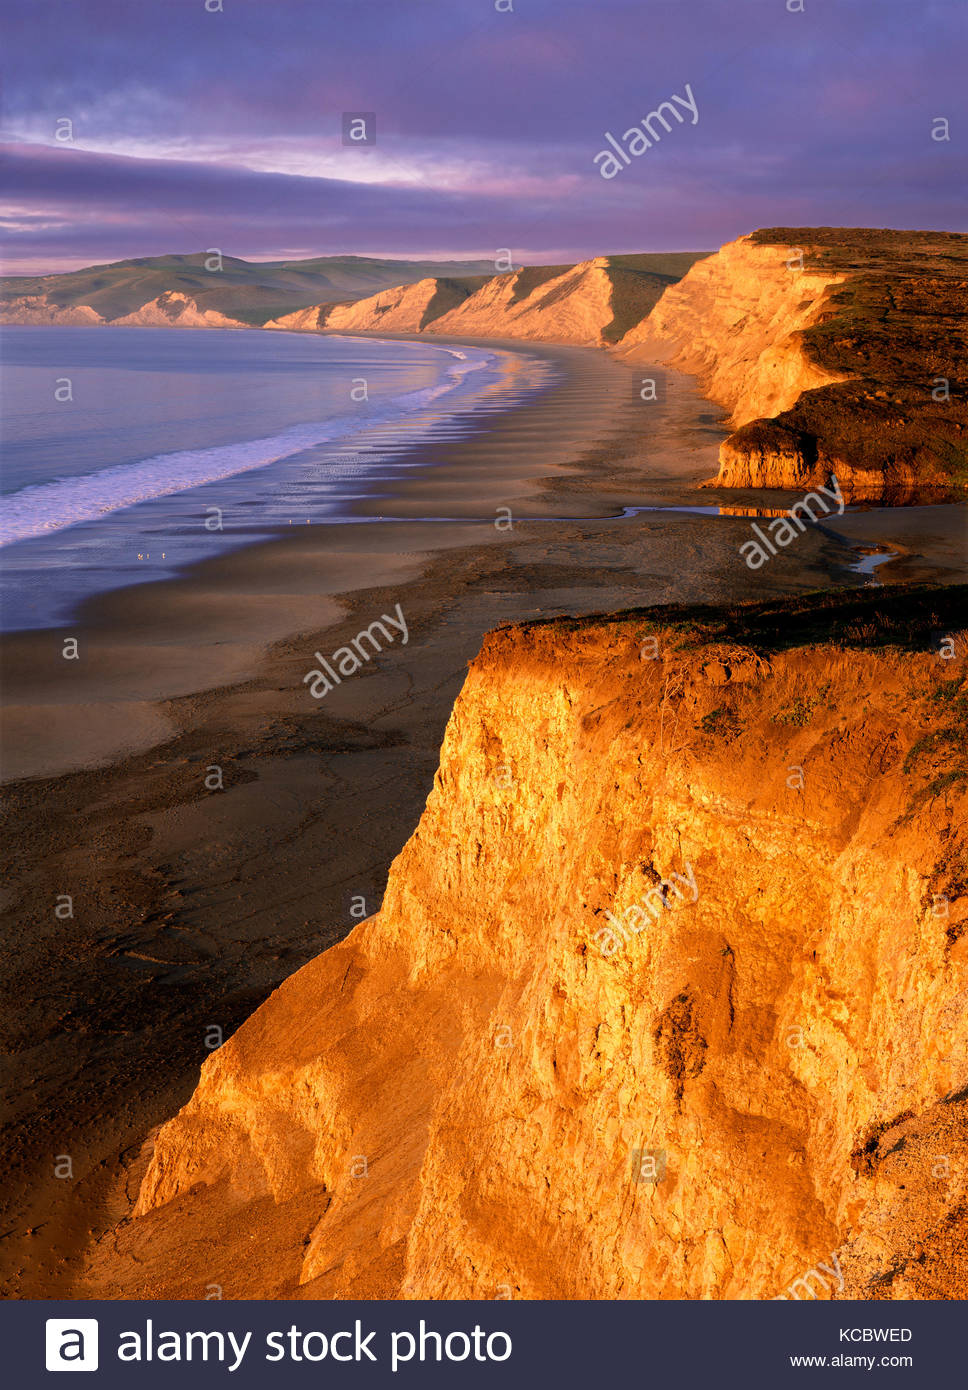 Sunrise at  Drakes Beach, Point Reyes National Seashore, California - Stock Image